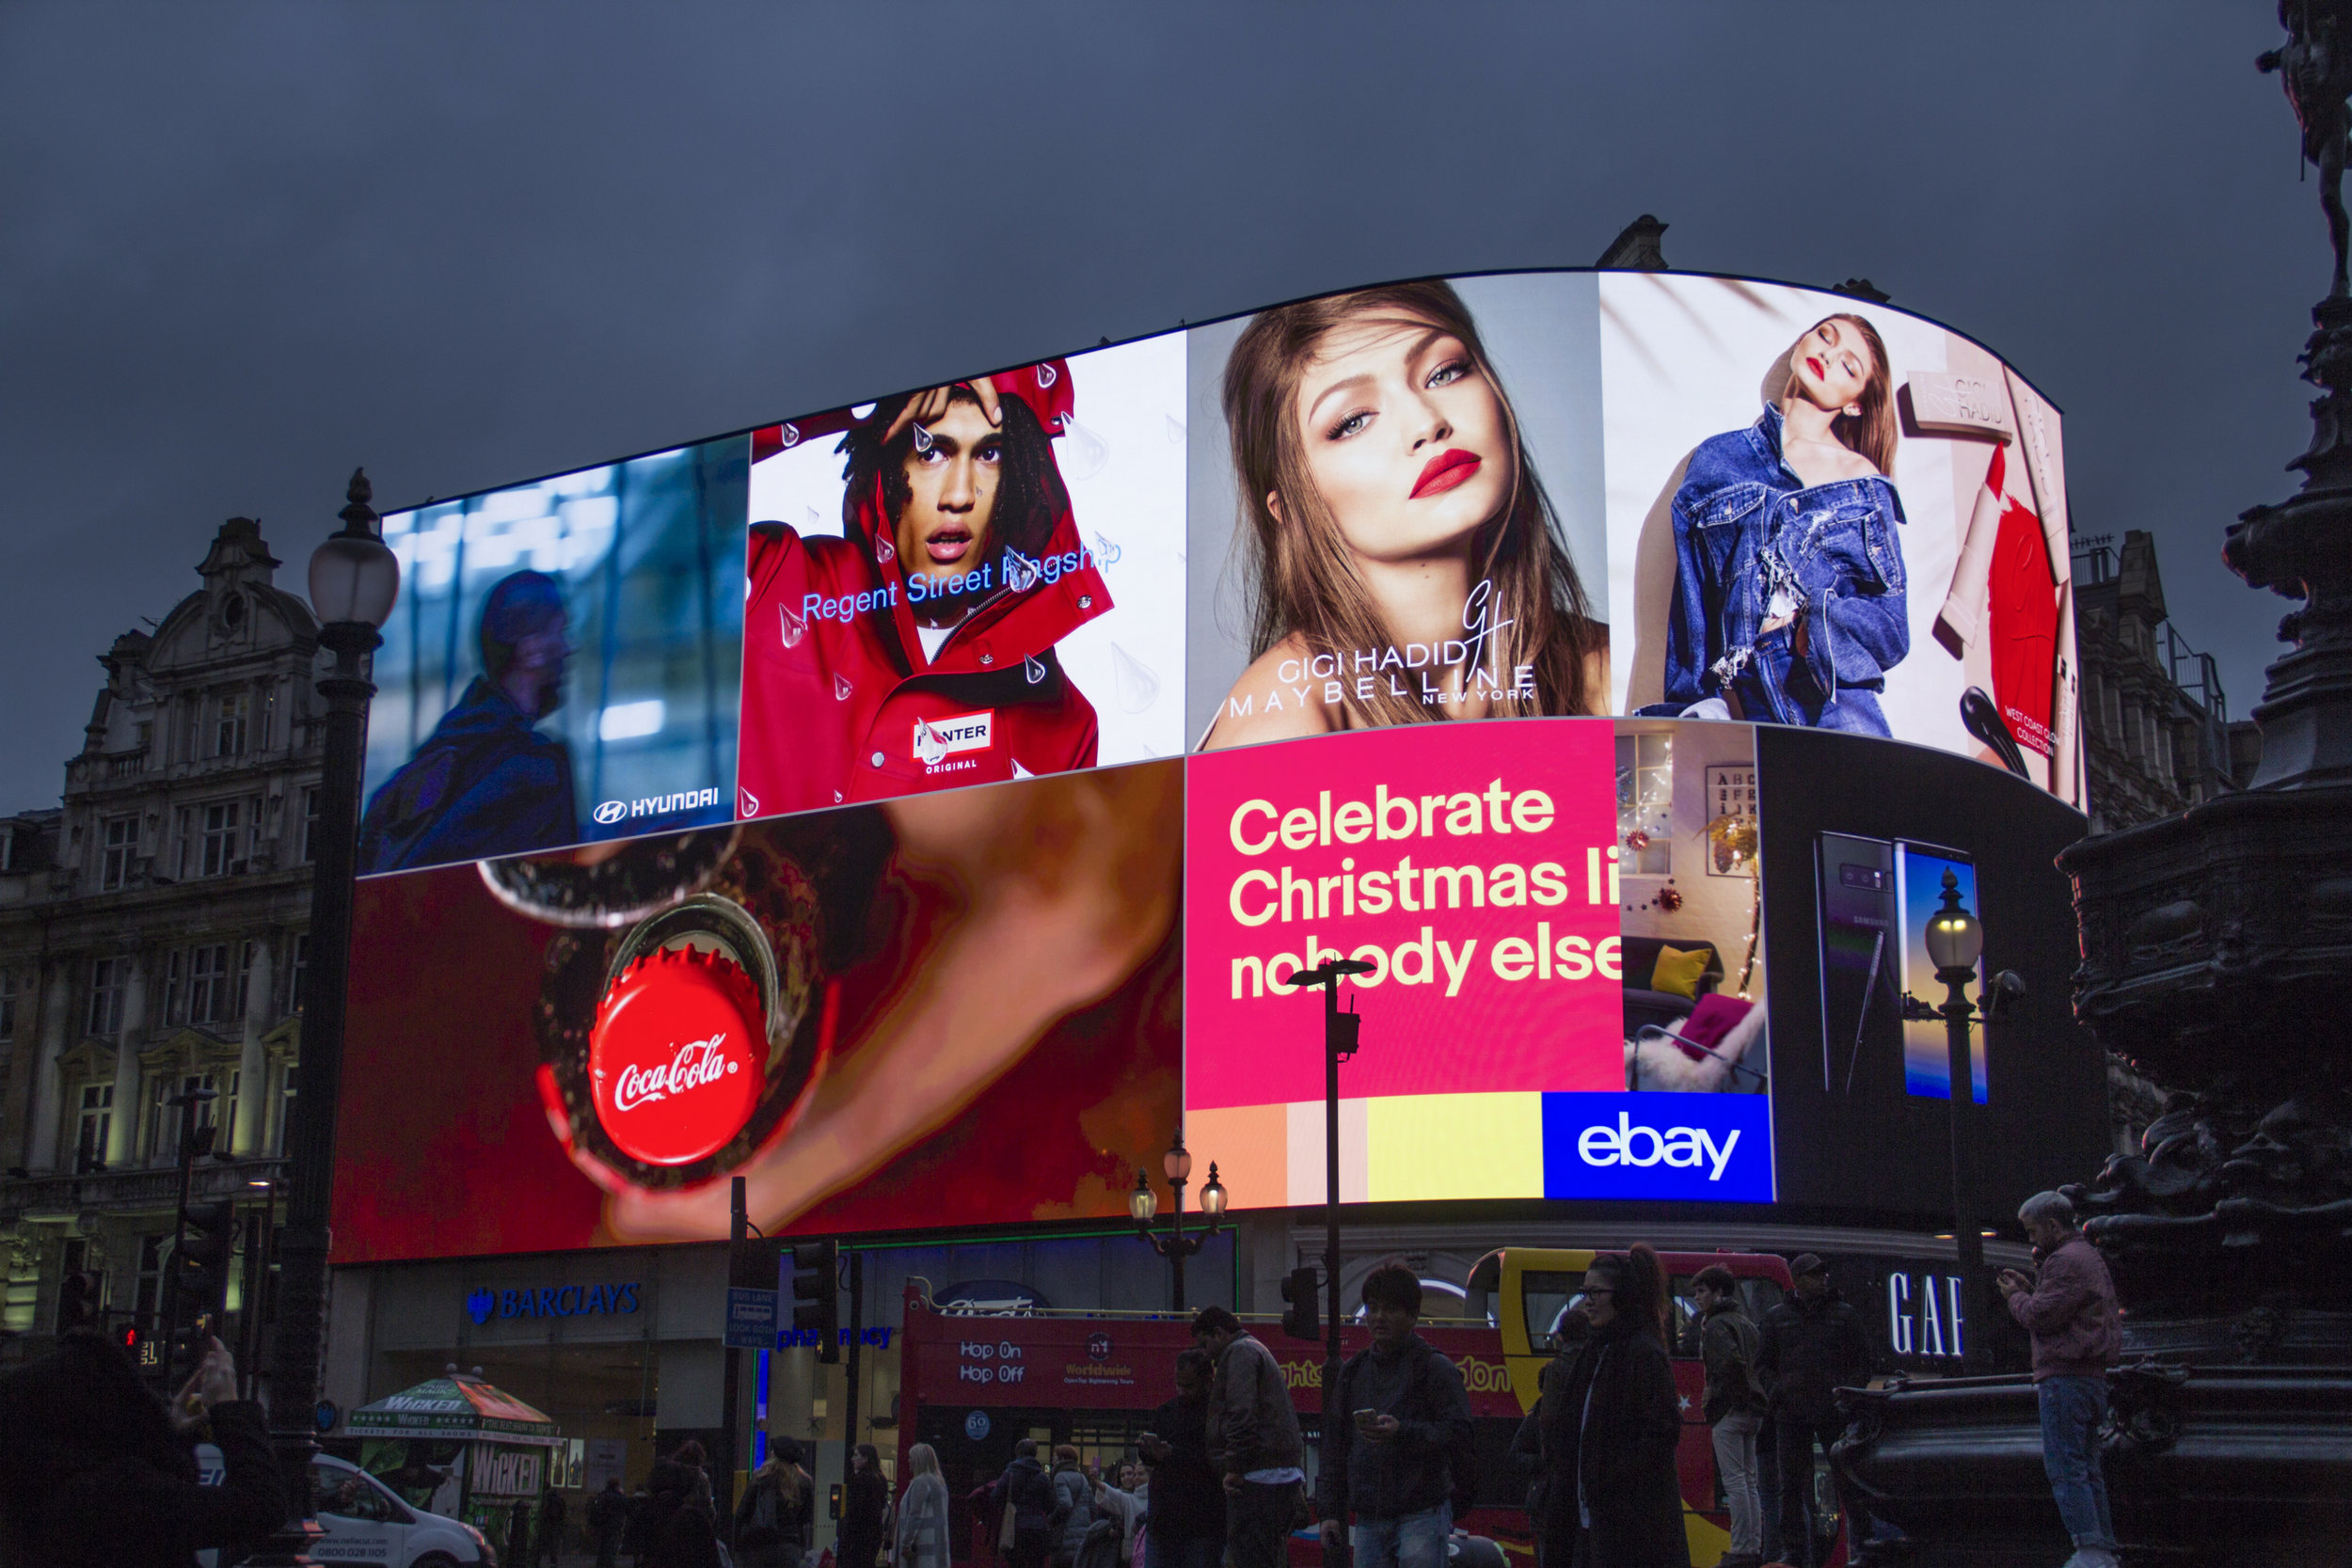 Gigi, Piccadilly Lights, Nov '17 1.JPG